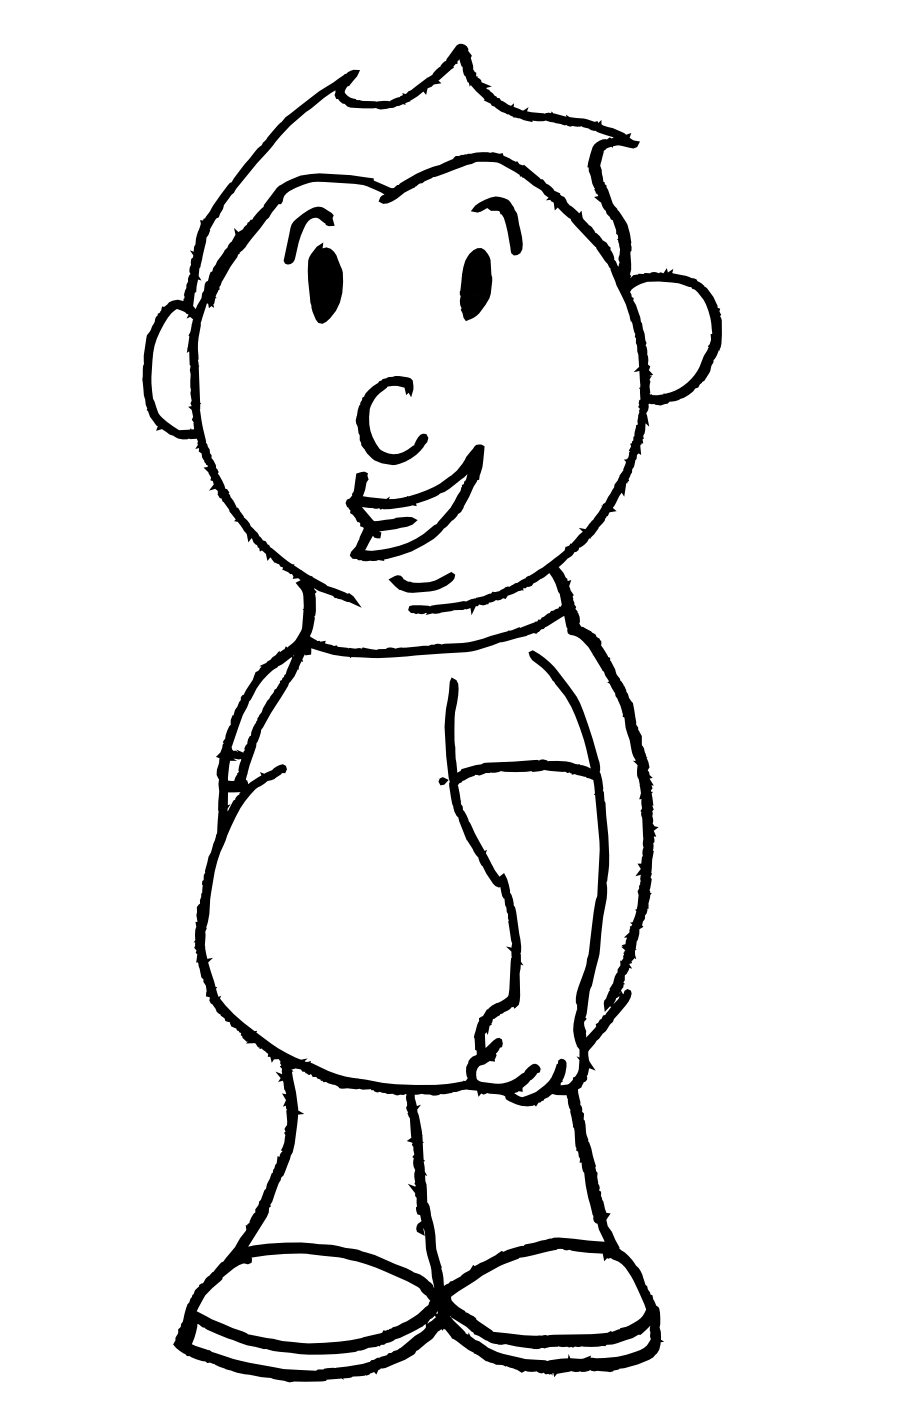 cartoon character drawing pcohen sketch blog first post of the new year drawing character cartoon